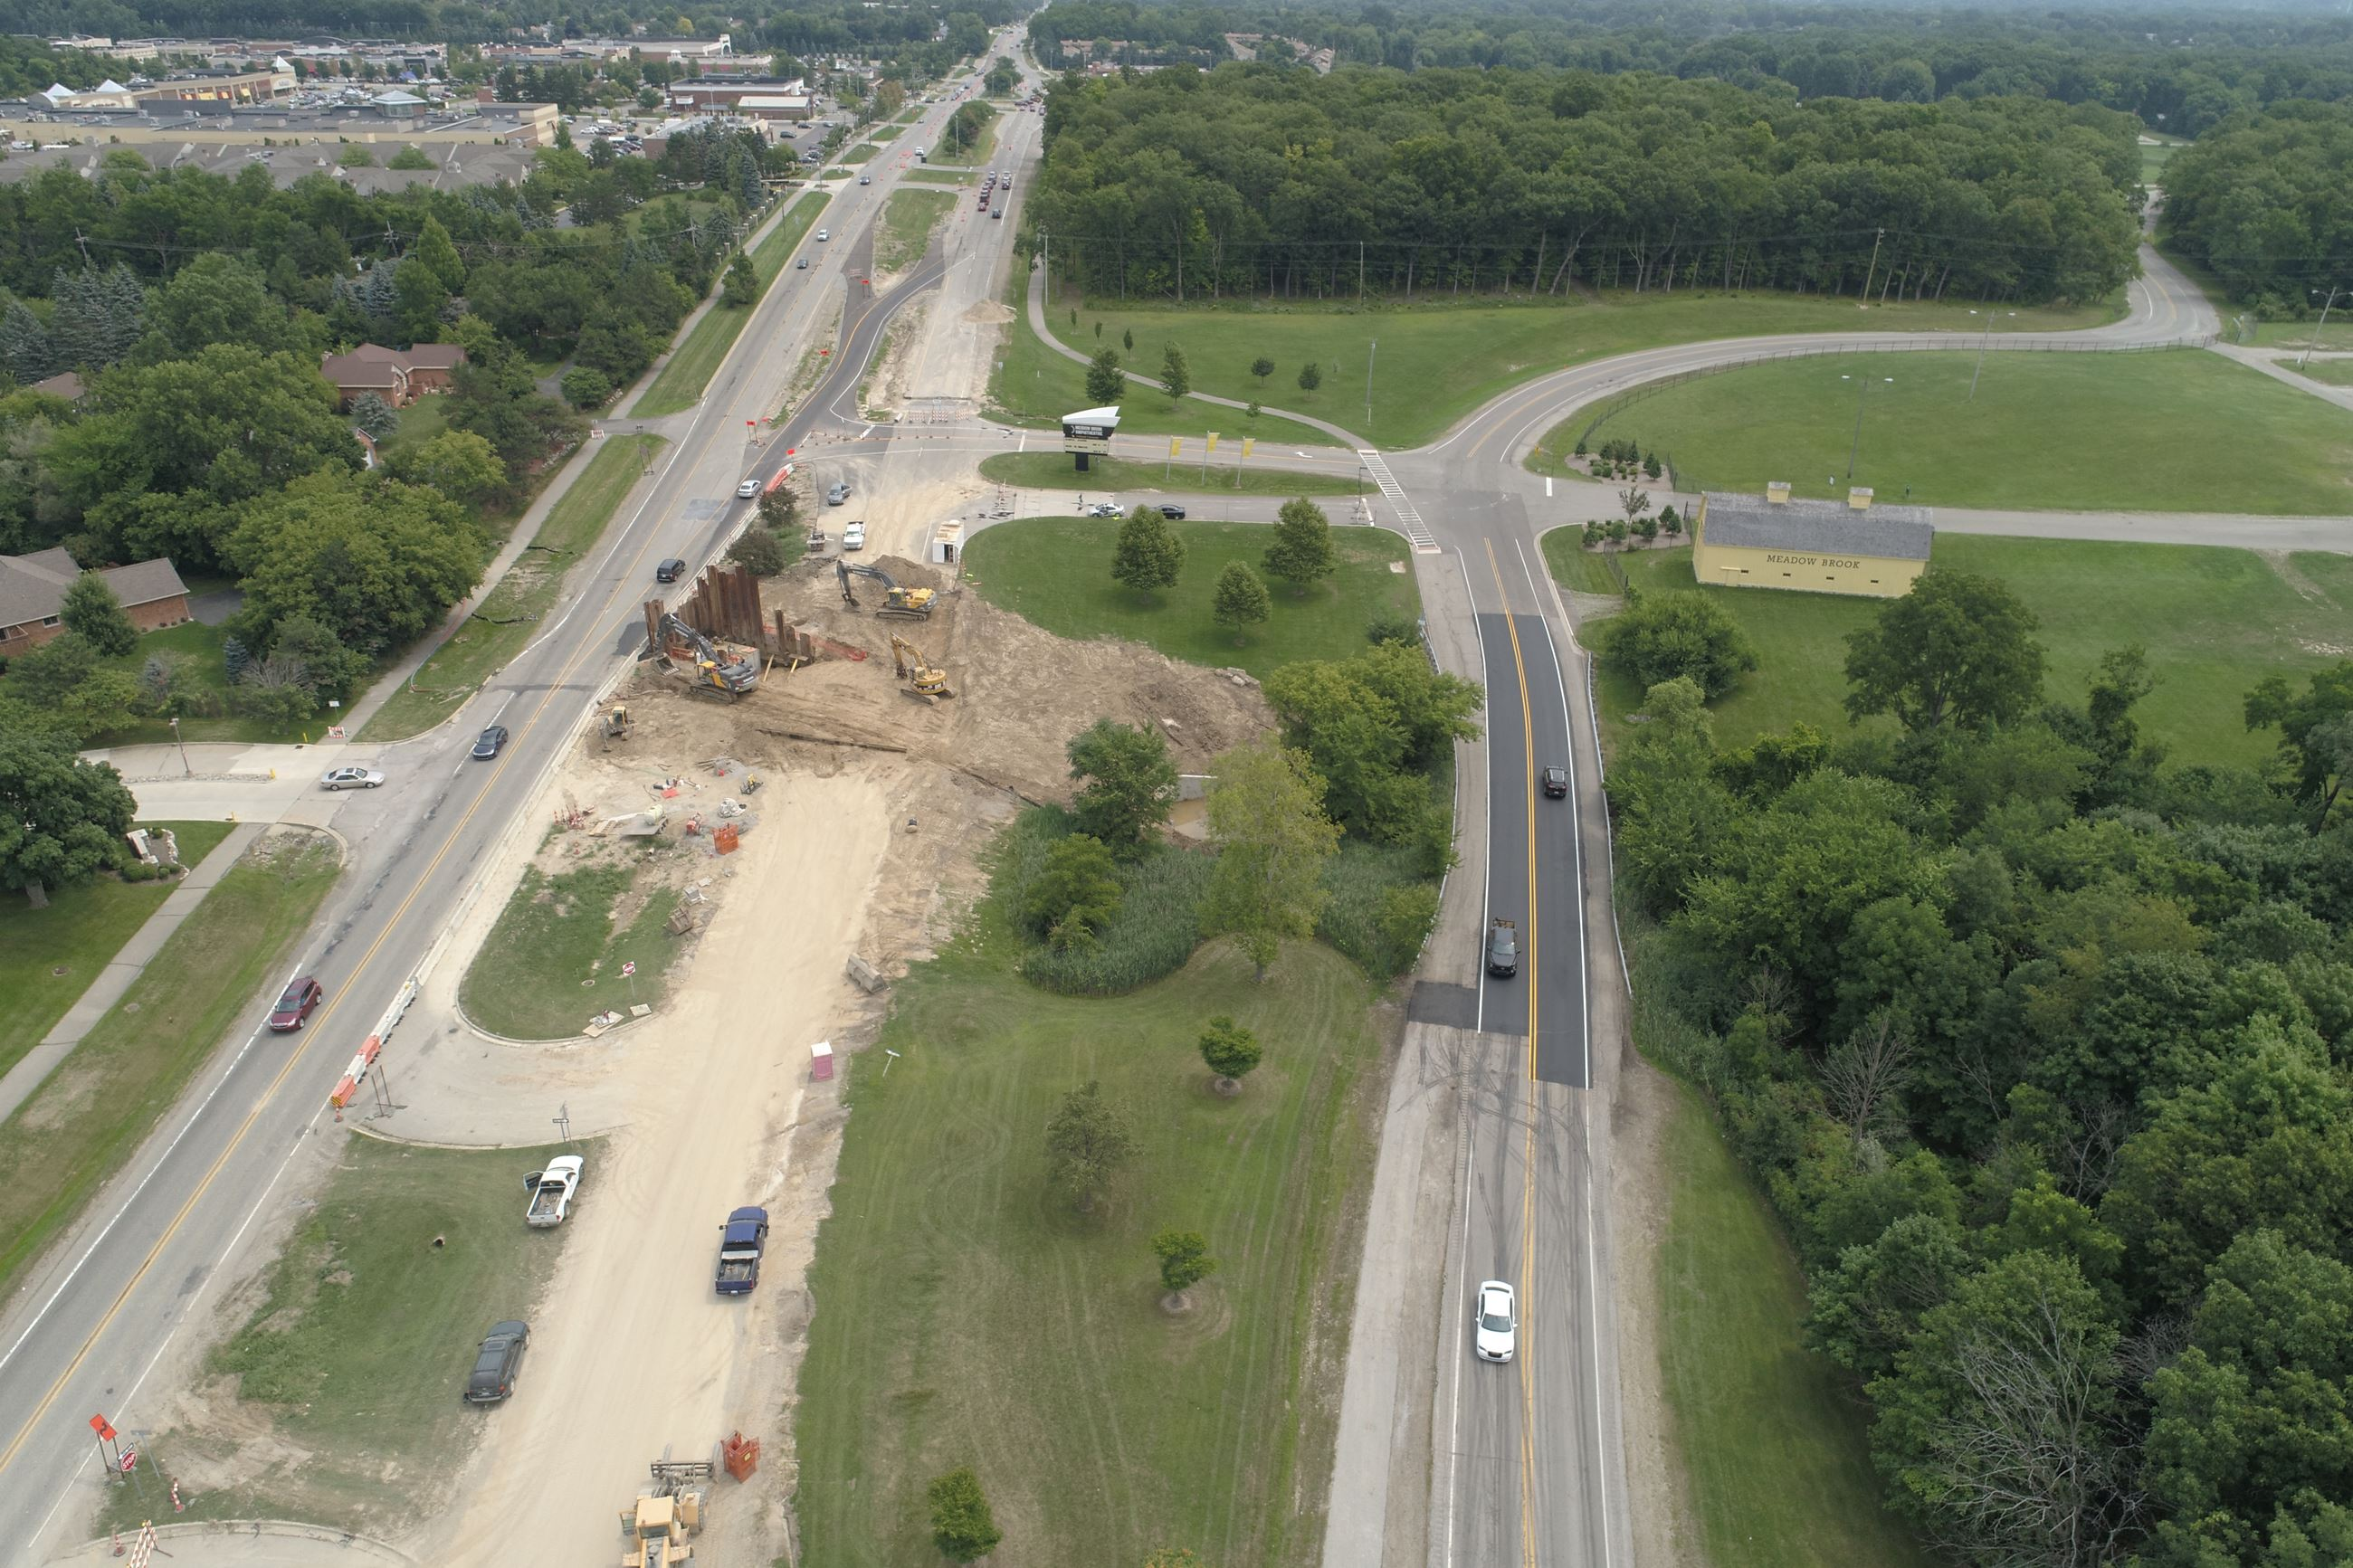 Aerial Shot of Walton Blvd Looking East